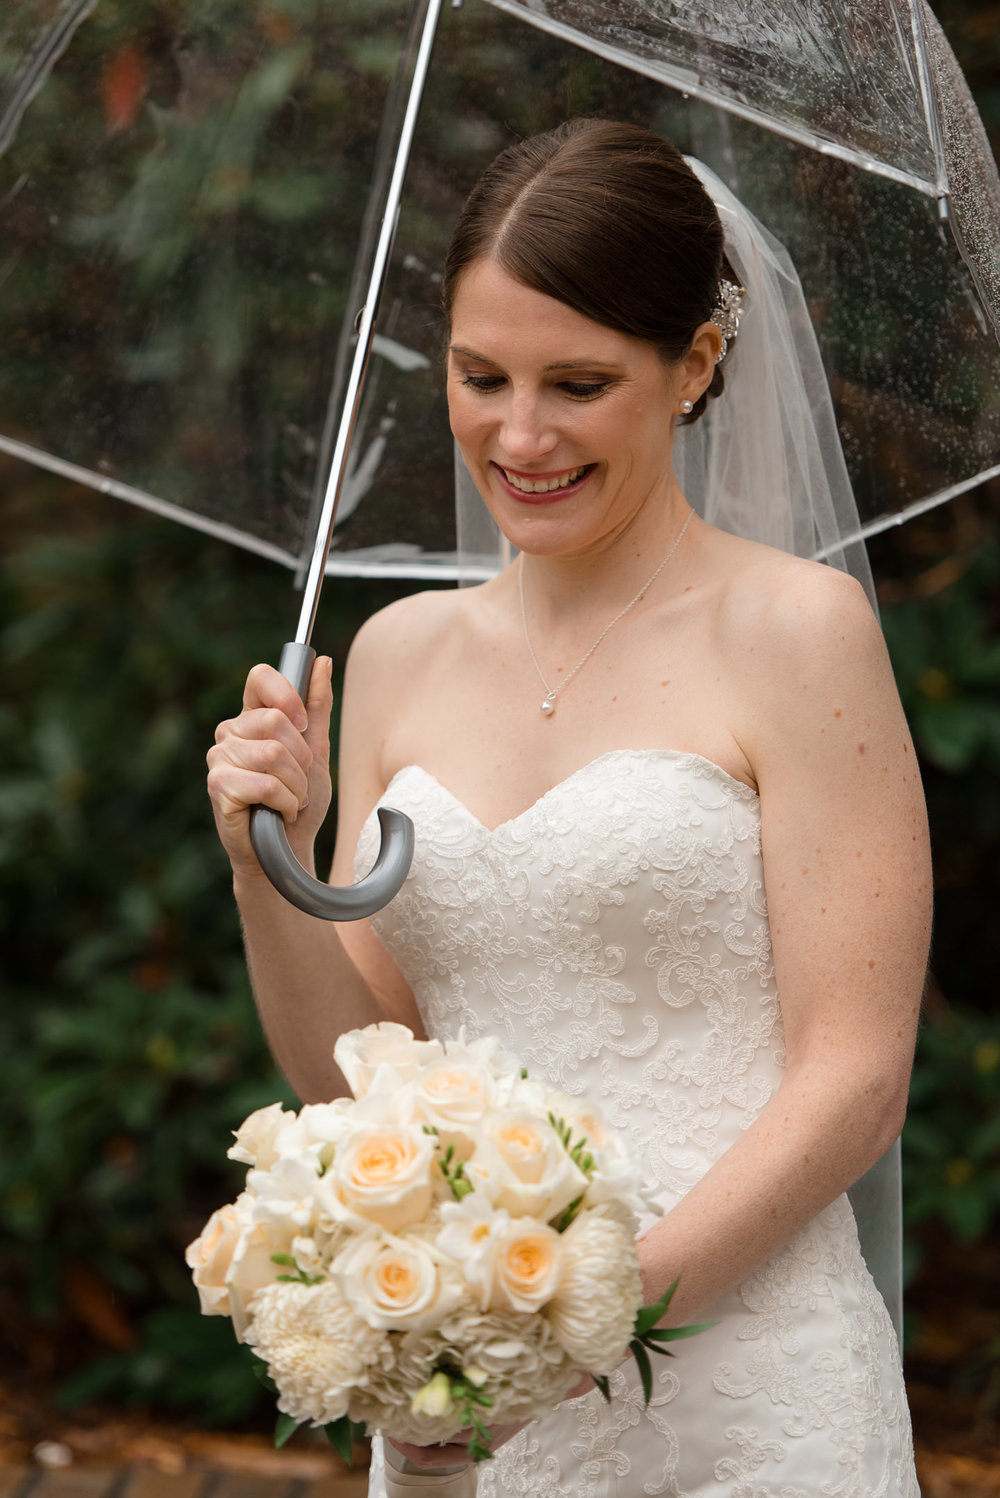 Rainy Bridal Portrait at University of Washington